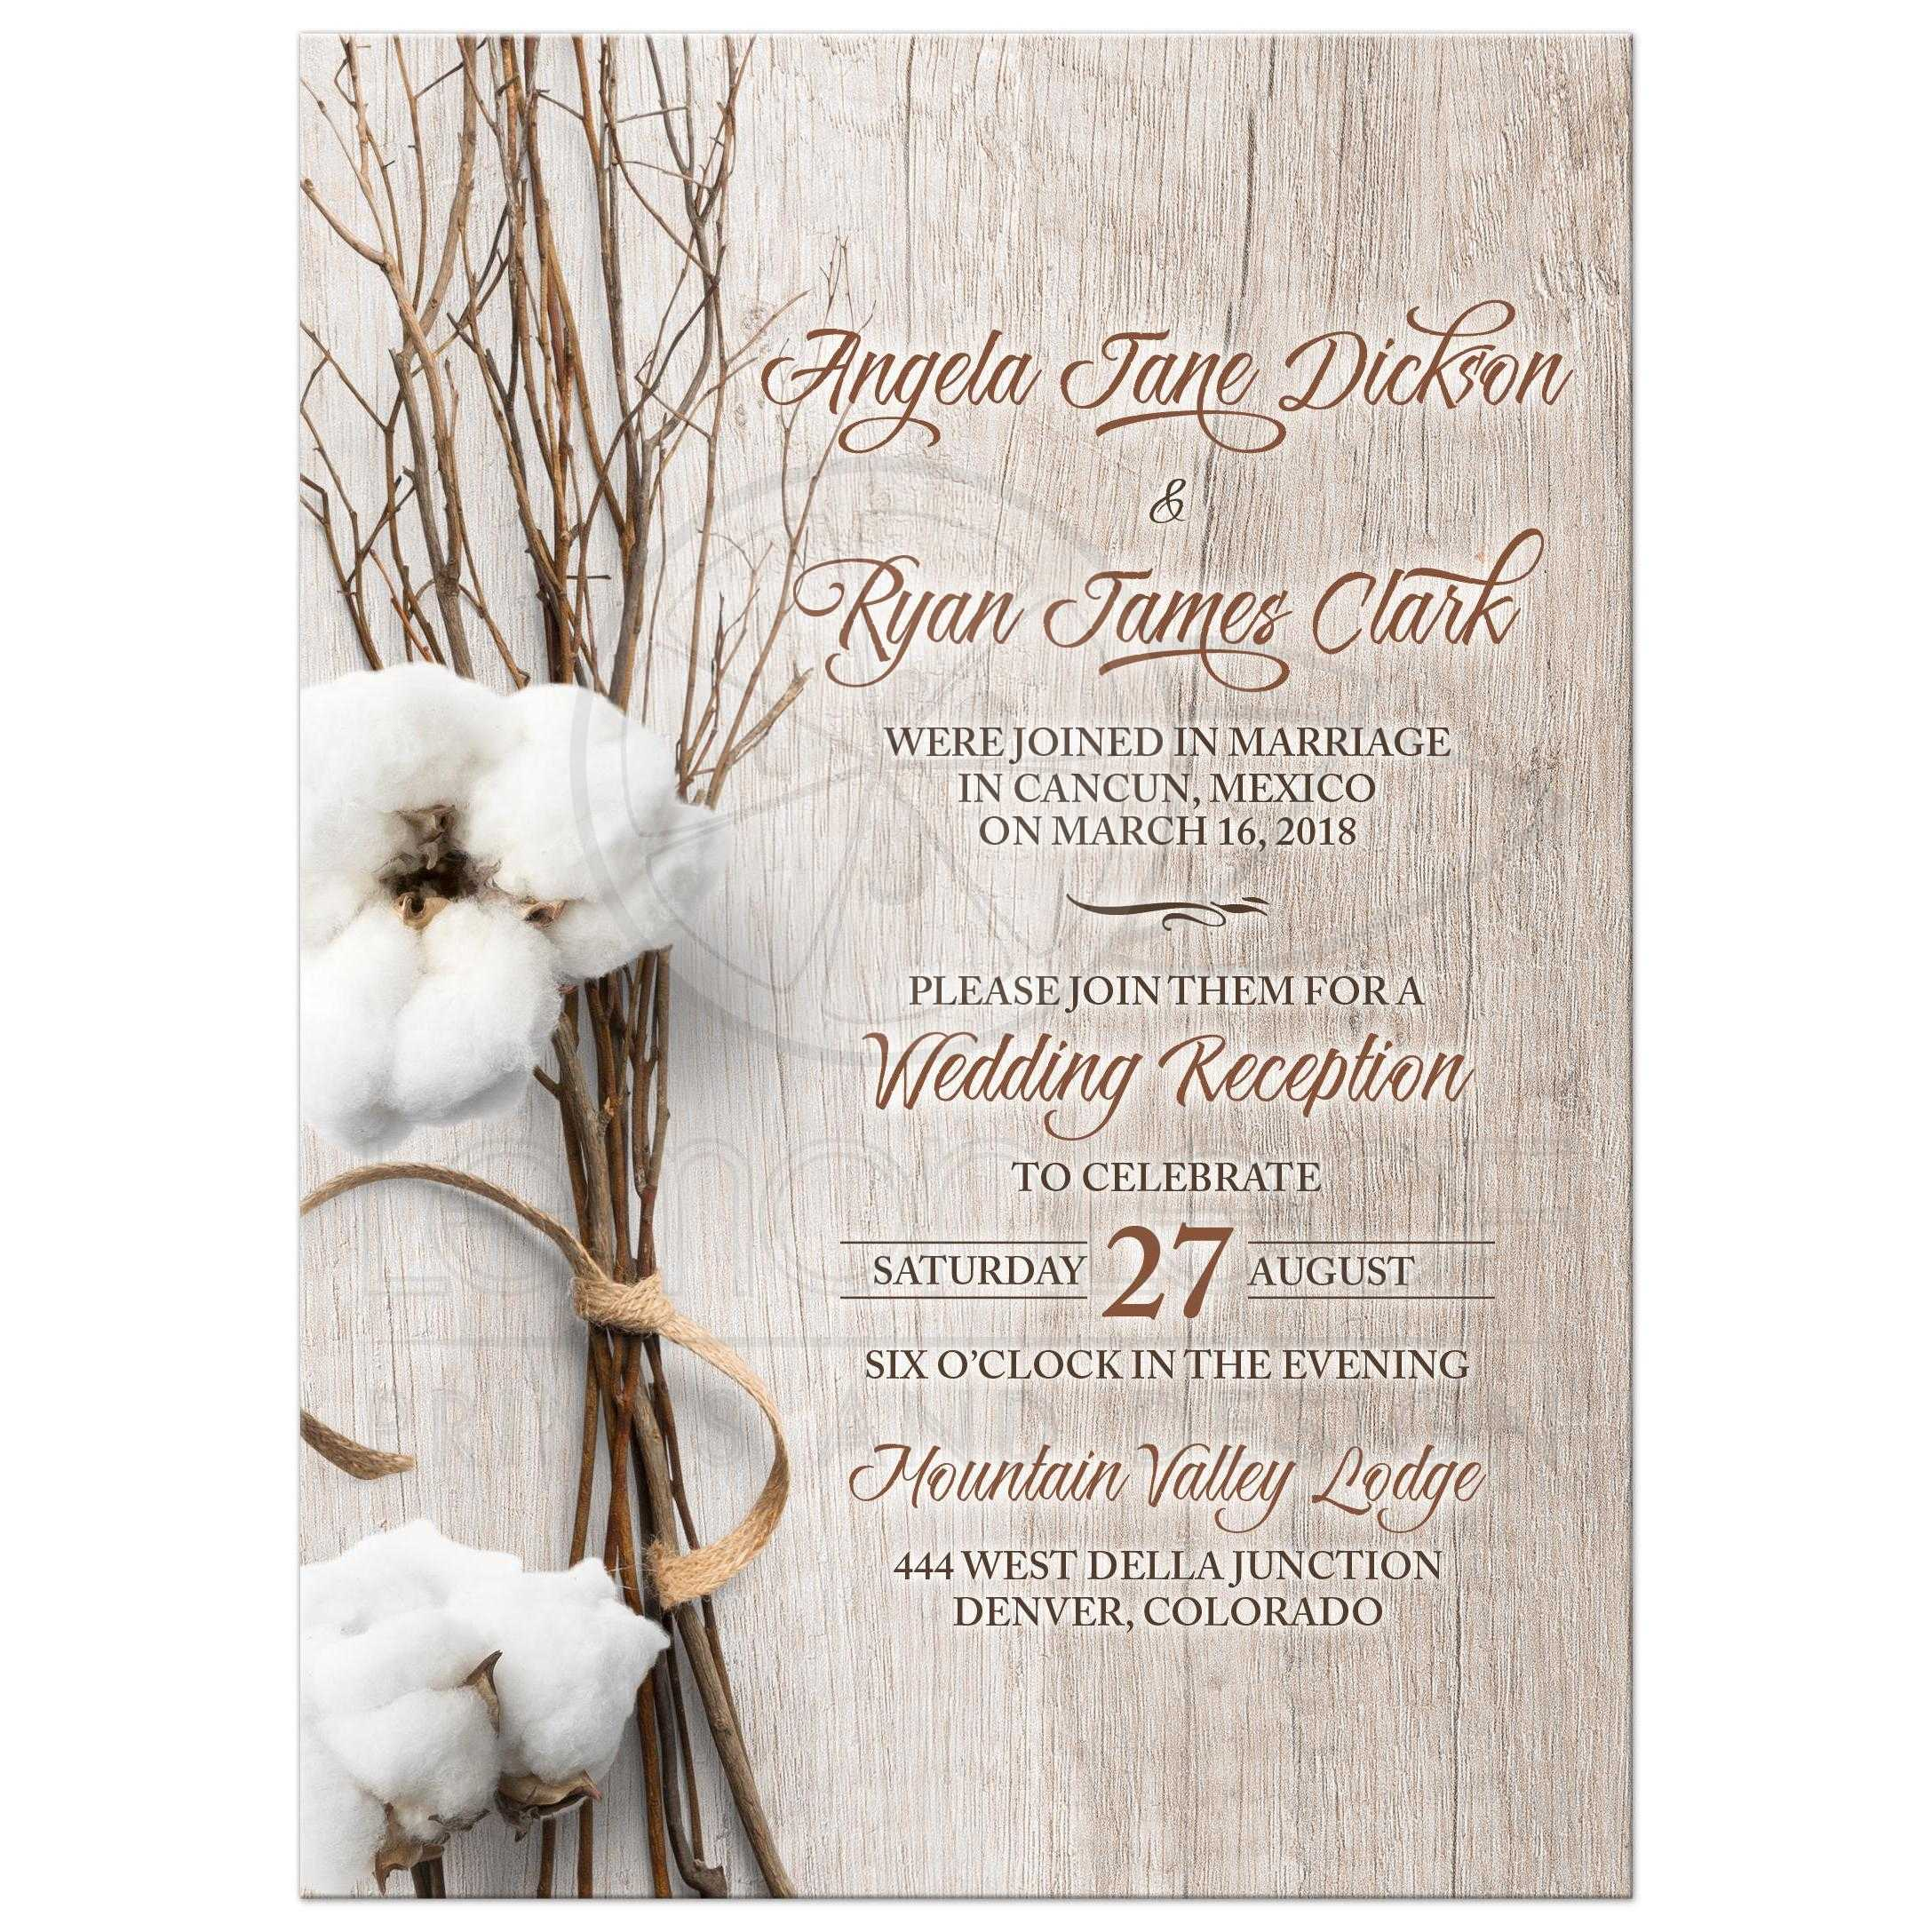 Sending Wedding Invitations Post Office: Trendy Rustic Cotton Post Wedding Reception Only Invitation